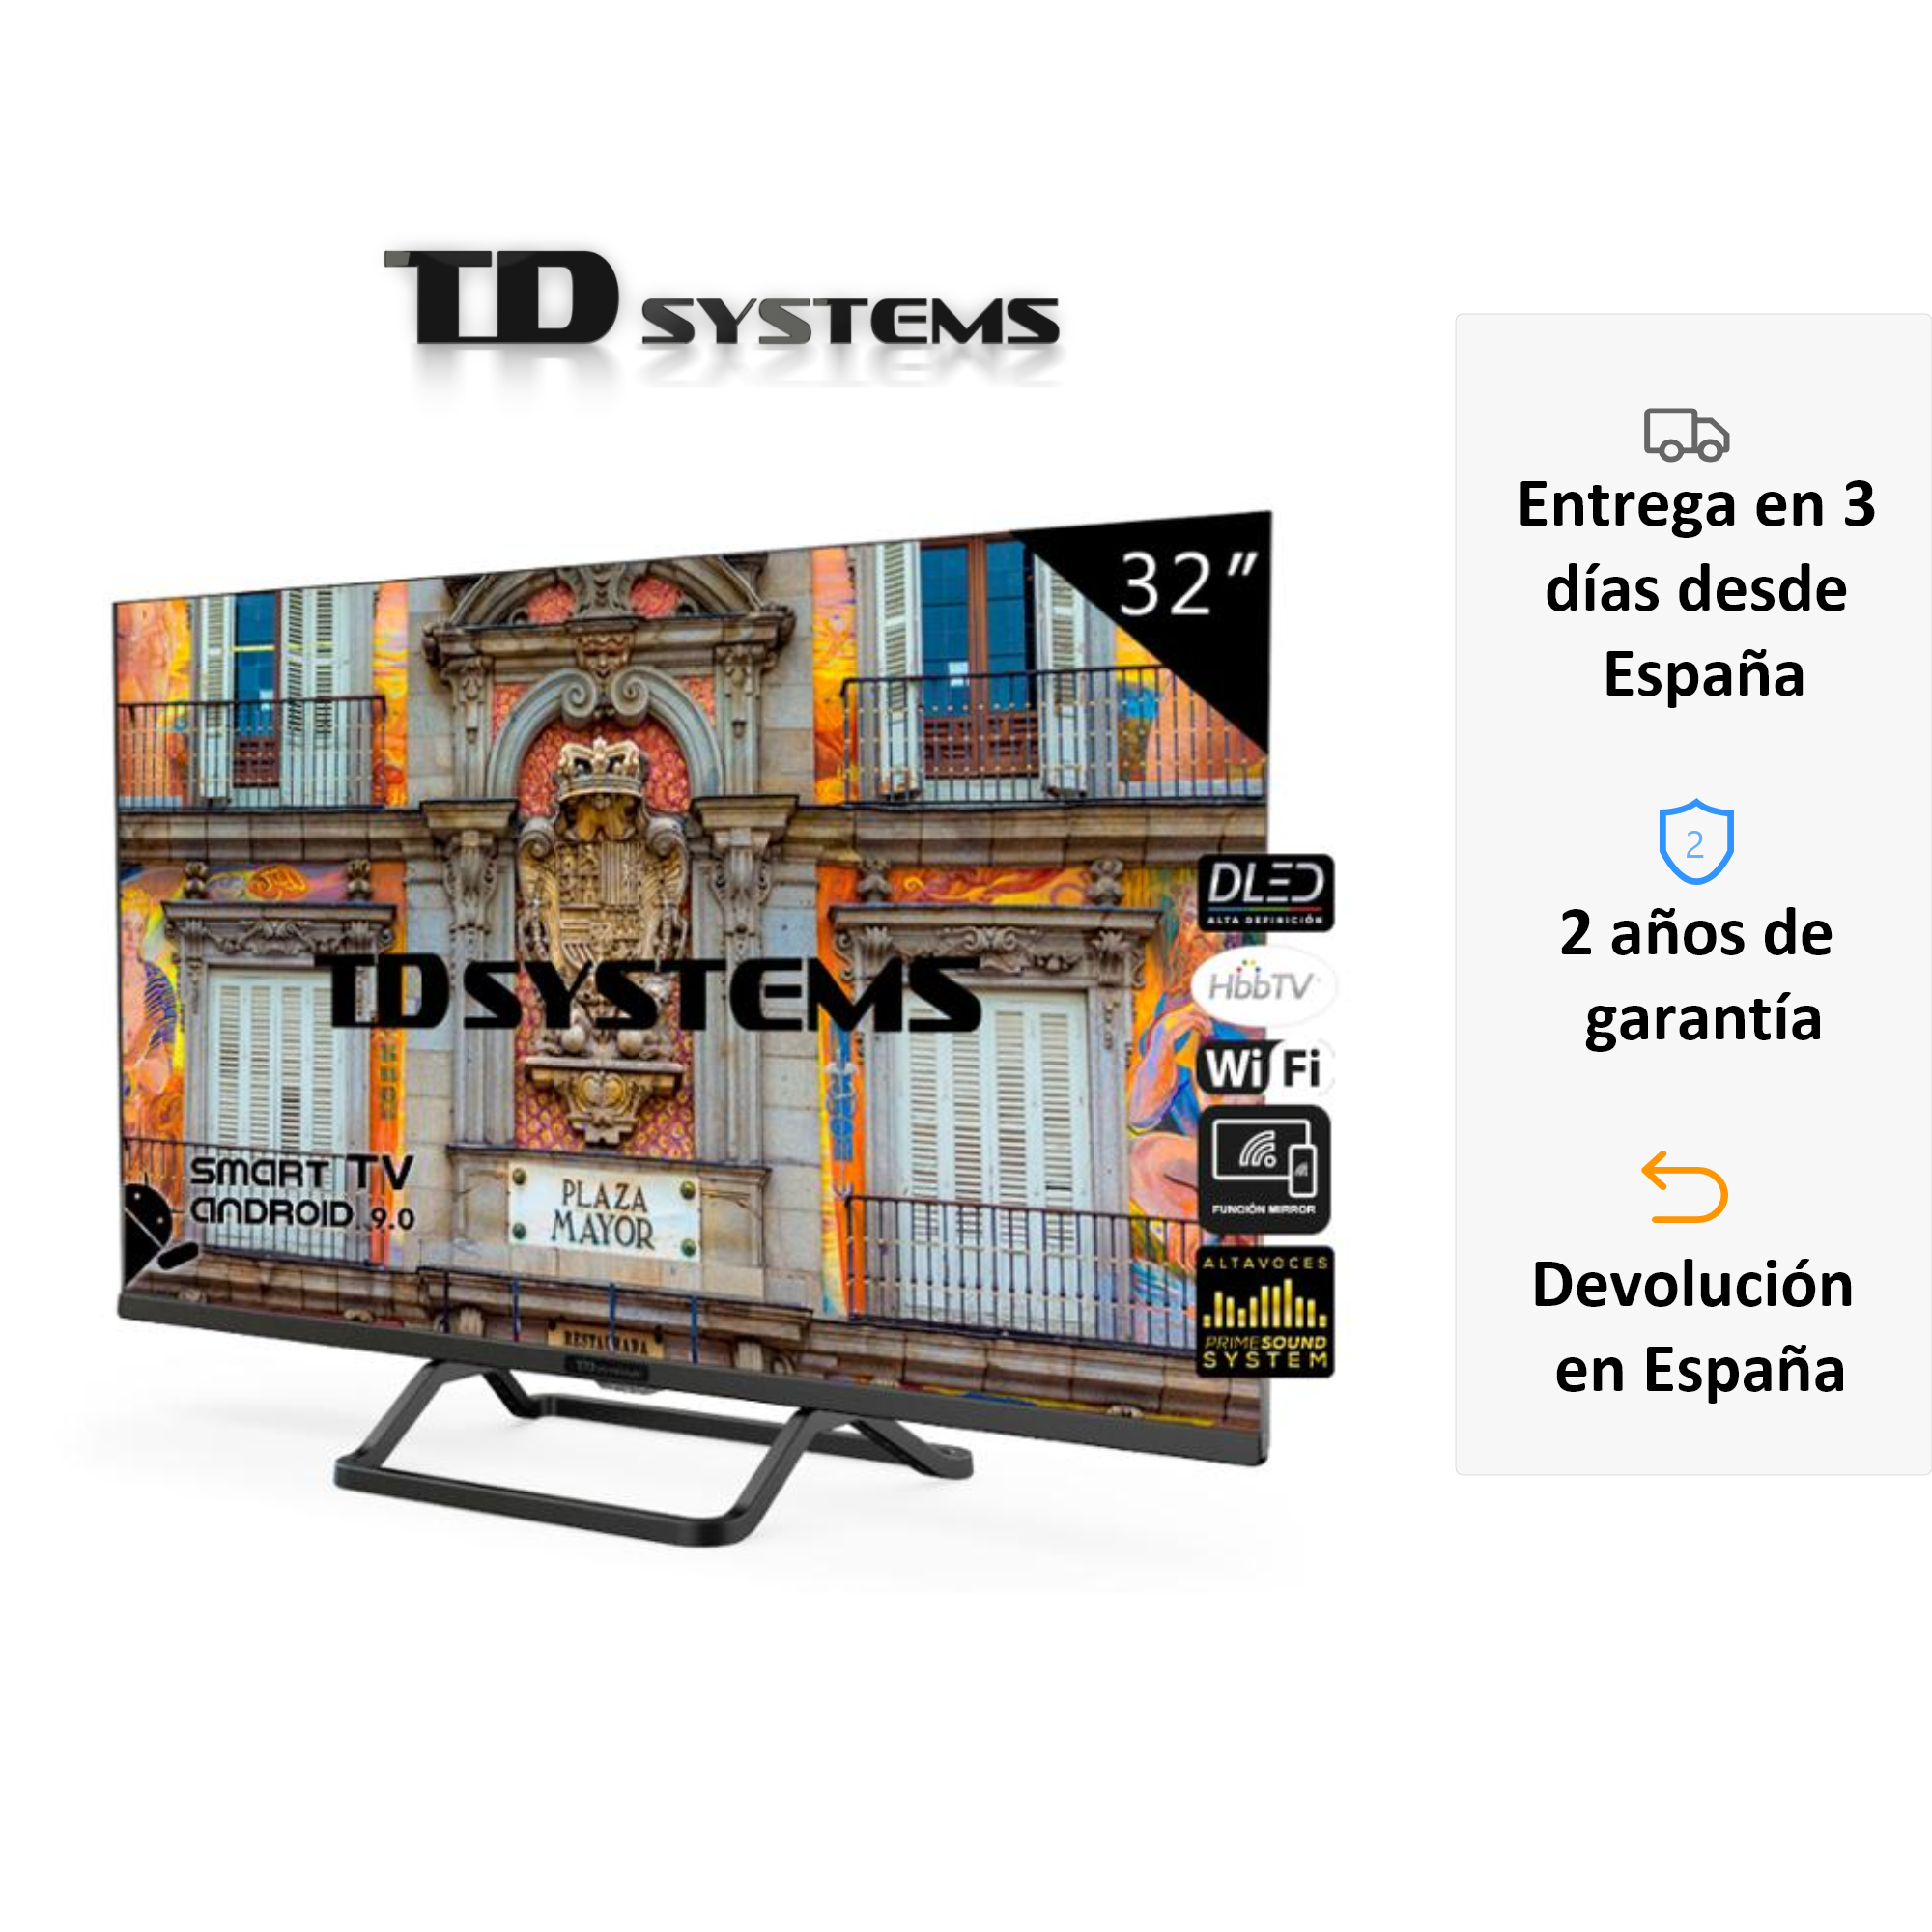 Televisions Smart TV 32 Inch TD Systems K32DLX10HS. 3x HDMI, DVB-T2/C/S2, HbbTV [Ship From Spain, 2 Year Warranty]